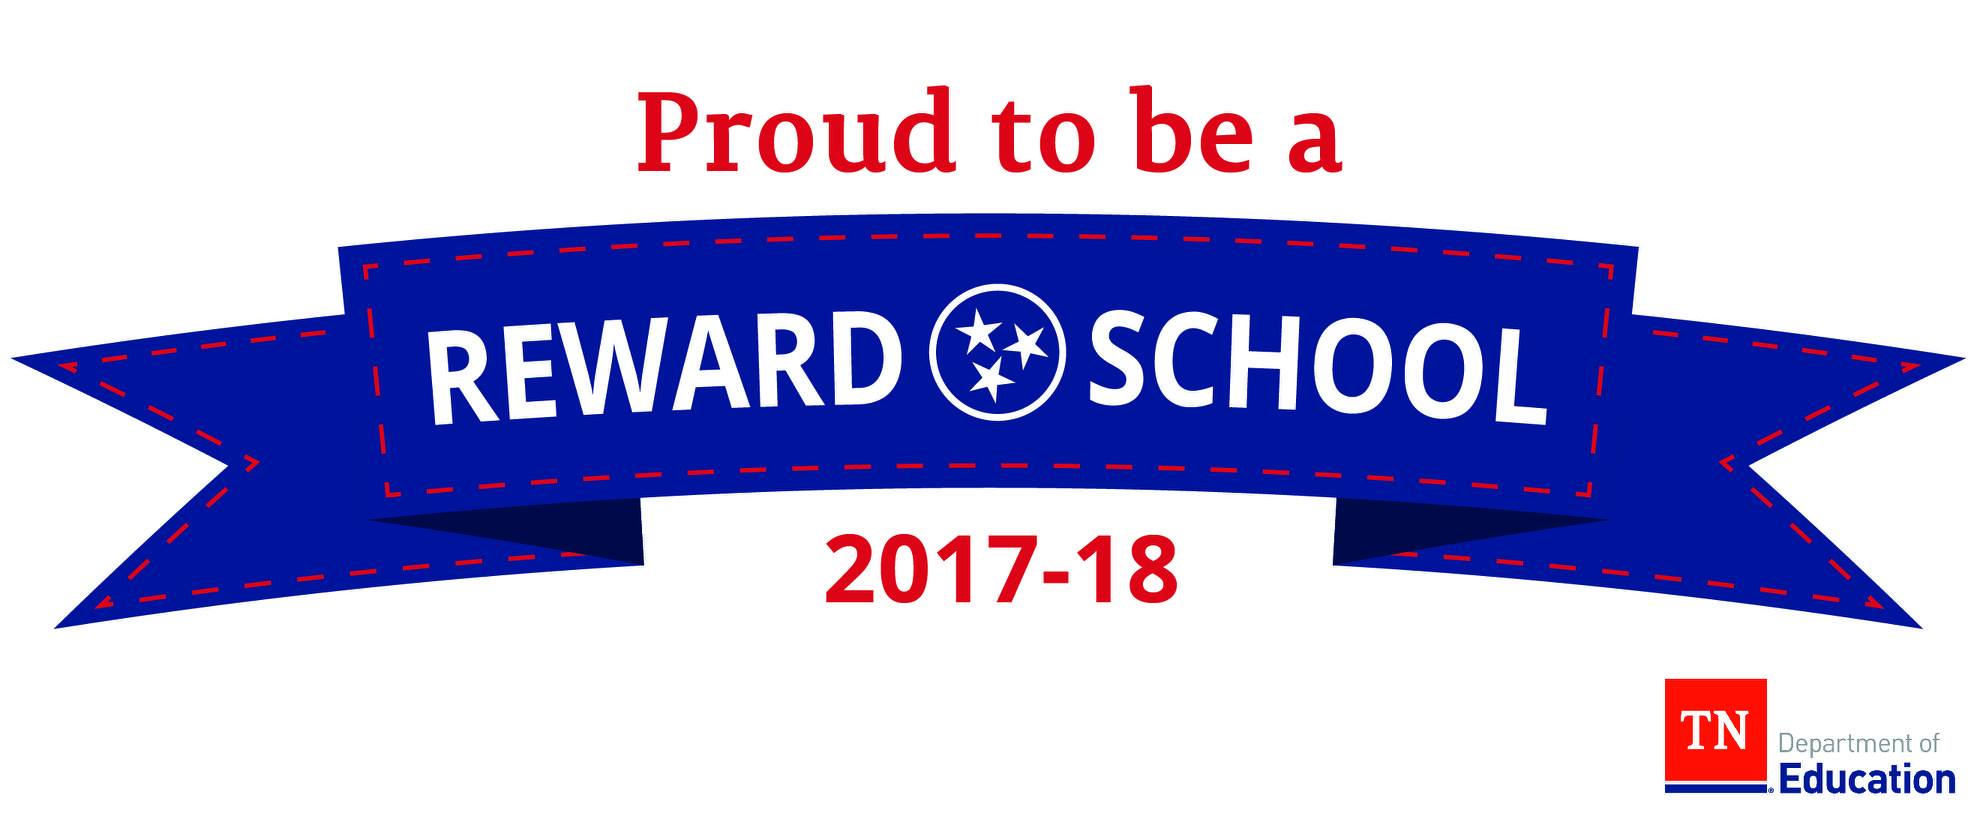 Proud to be a Reward School 2017-18